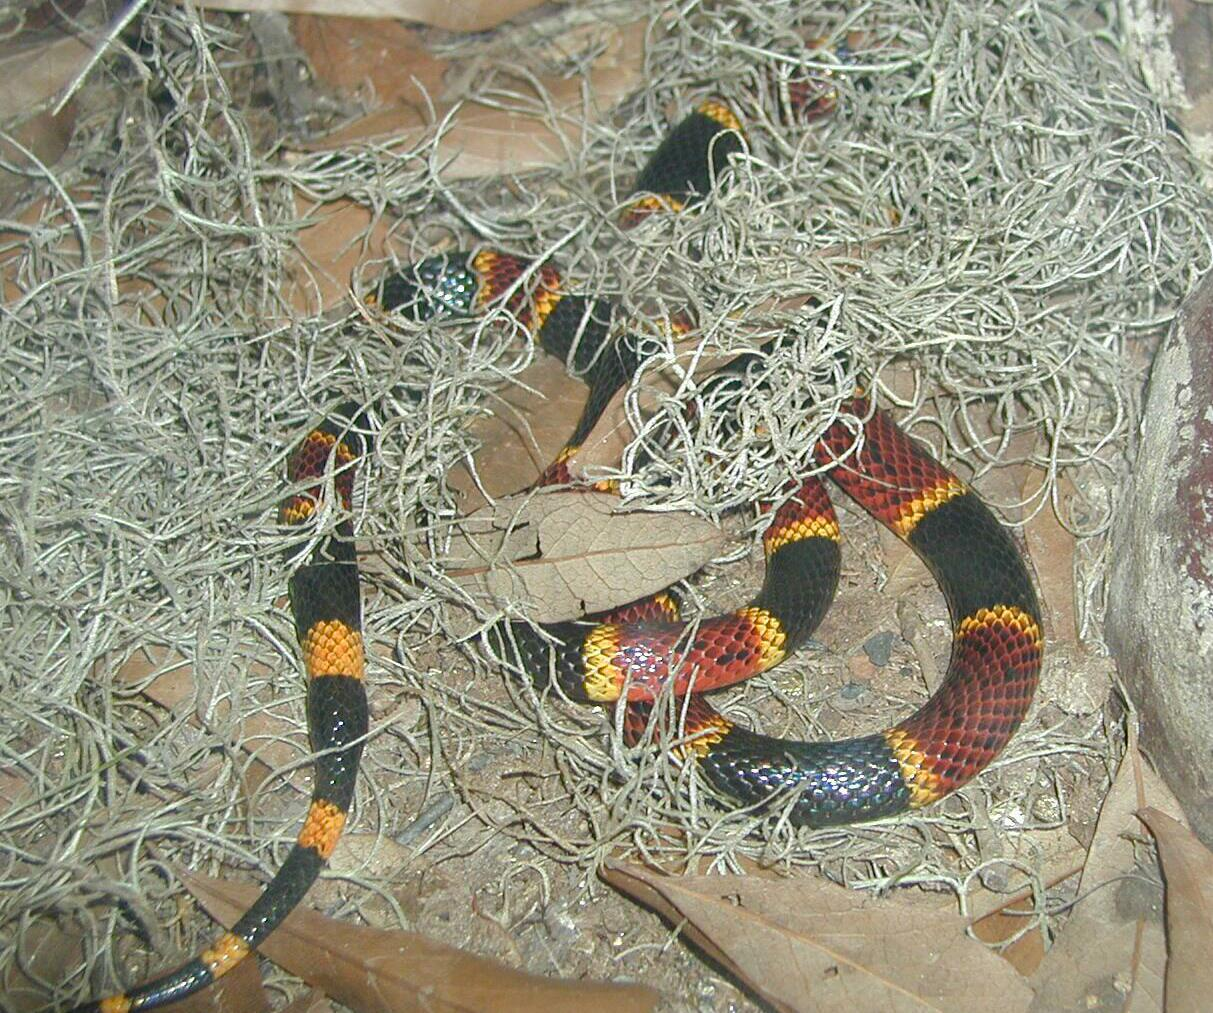 Snakes2